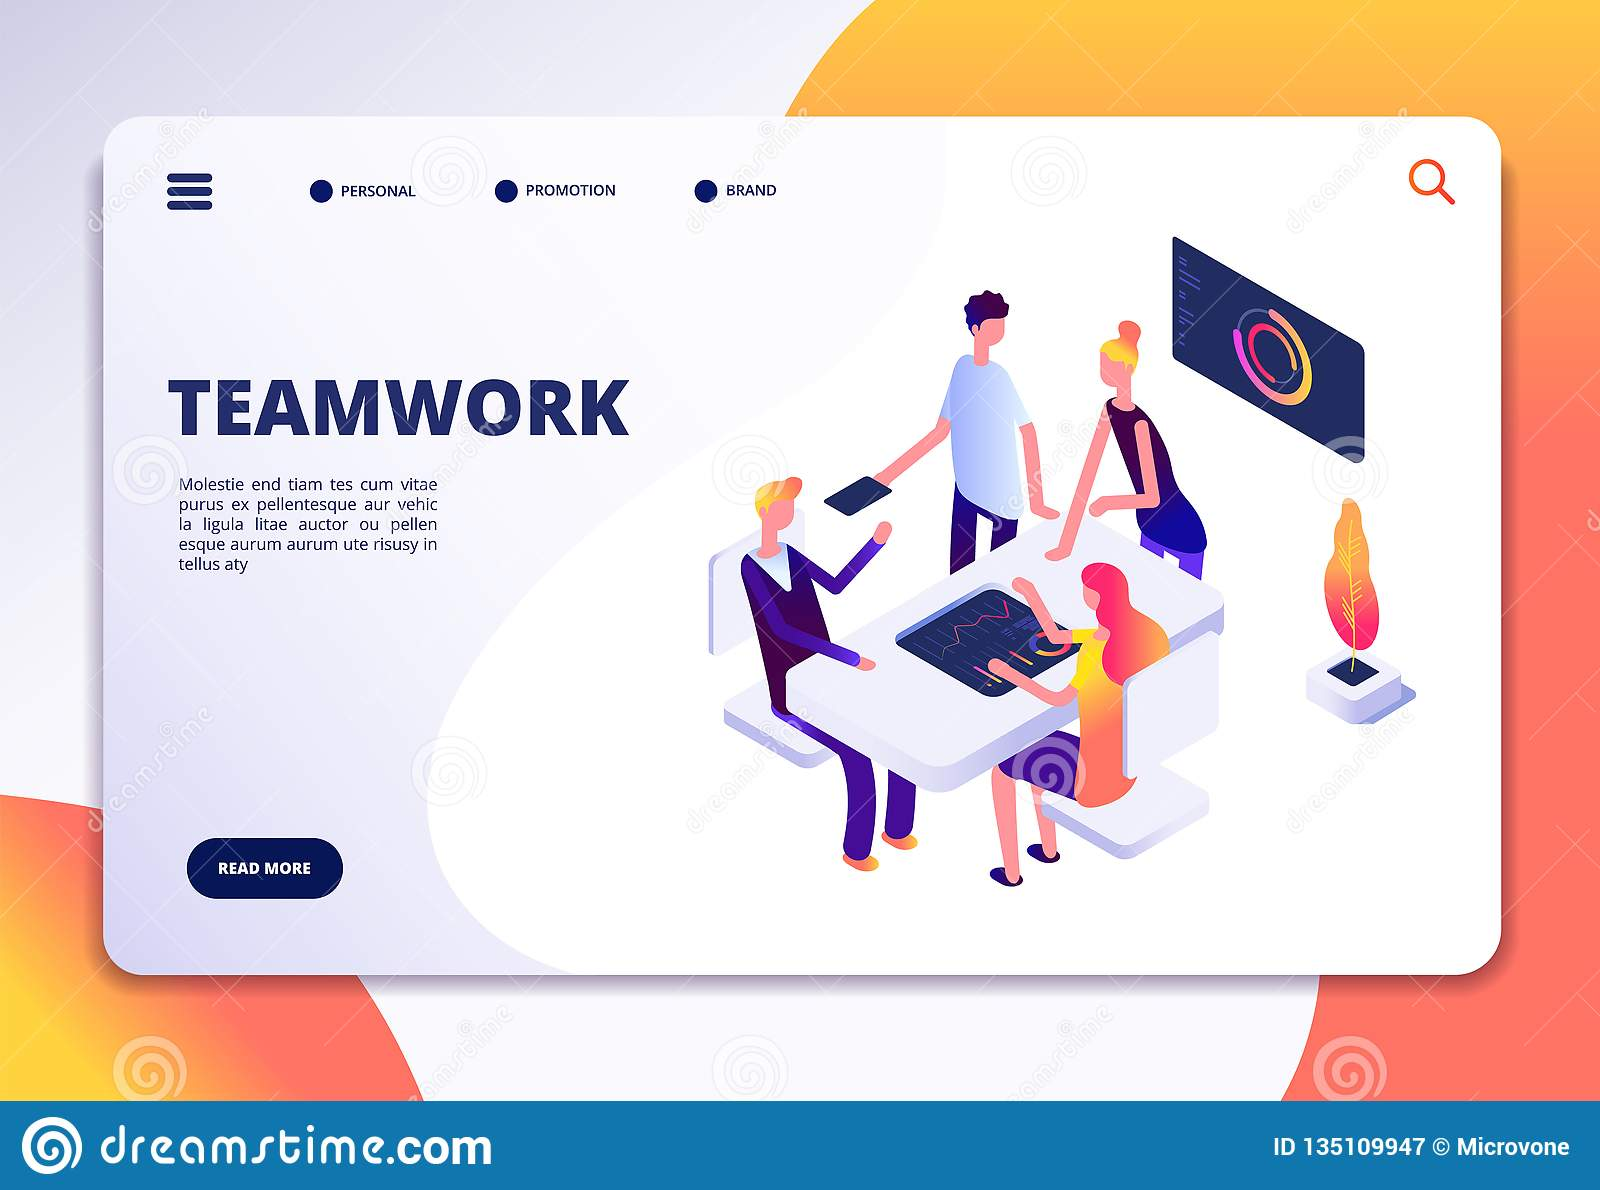 Workspace isometric landing page. People team work in office. Partnership, business process persons working together